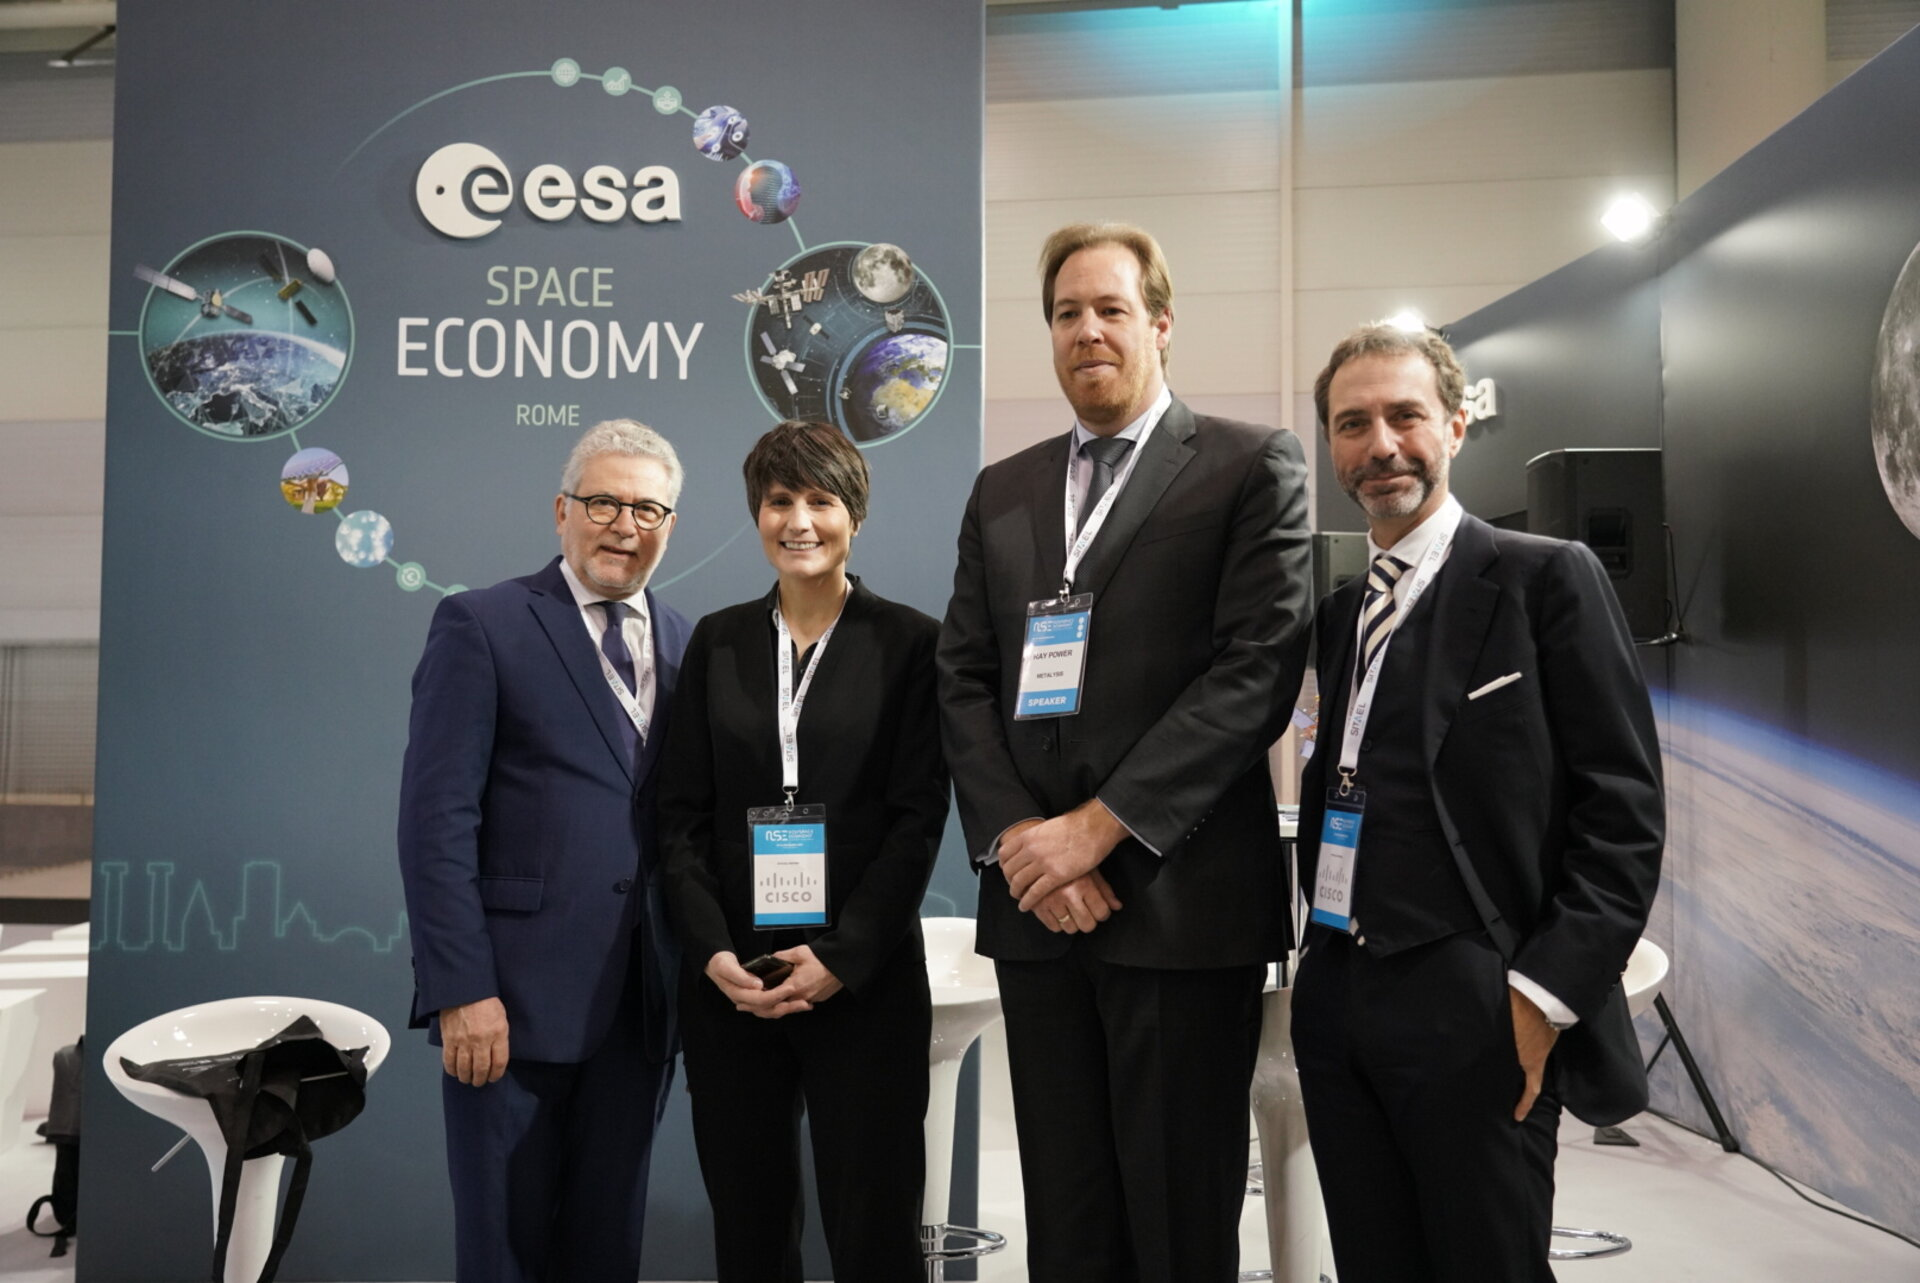 Eric Morel de Westgaver, ESA Director of Industry, Procurement and Legal Services, ESA Astronaut Samantha Cristoforetti, Ray Power, CEO at Metalysis and Luca del Monte, ESA Head of Industrial Policy and SME Division